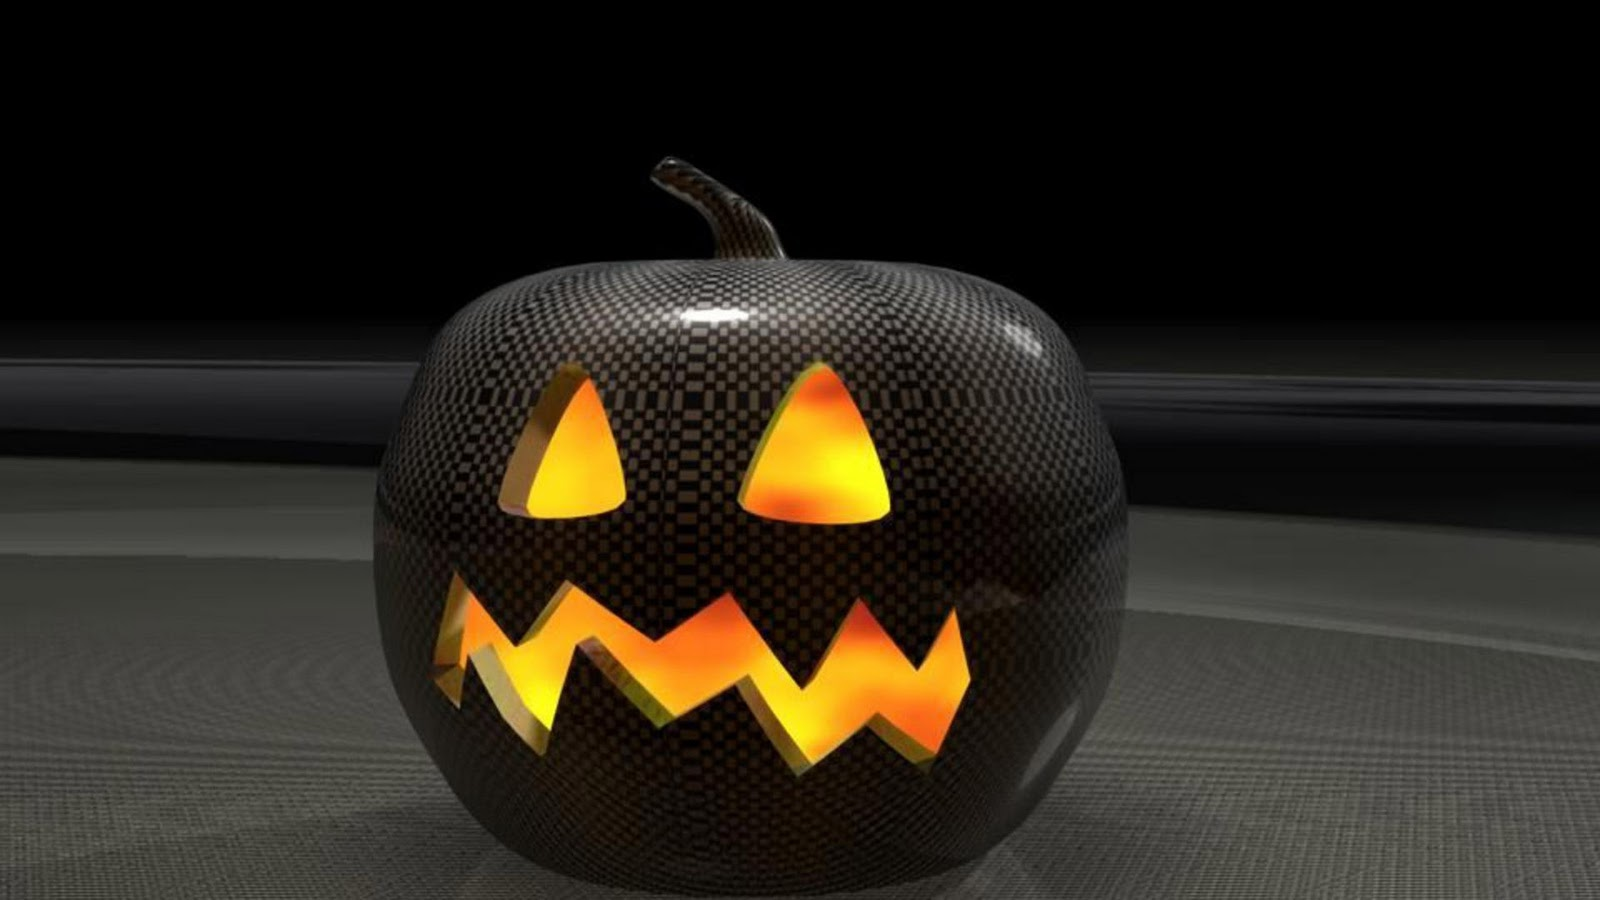 http://2.bp.blogspot.com/-4lFJgUSEVhc/UI2JXk_AYfI/AAAAAAAAGvg/eRJupJdcOq0/s1600/Best-top-desktop-halloween-wallpapers-hd-halloween-wallpaper-picture-image-photo-10.jpg